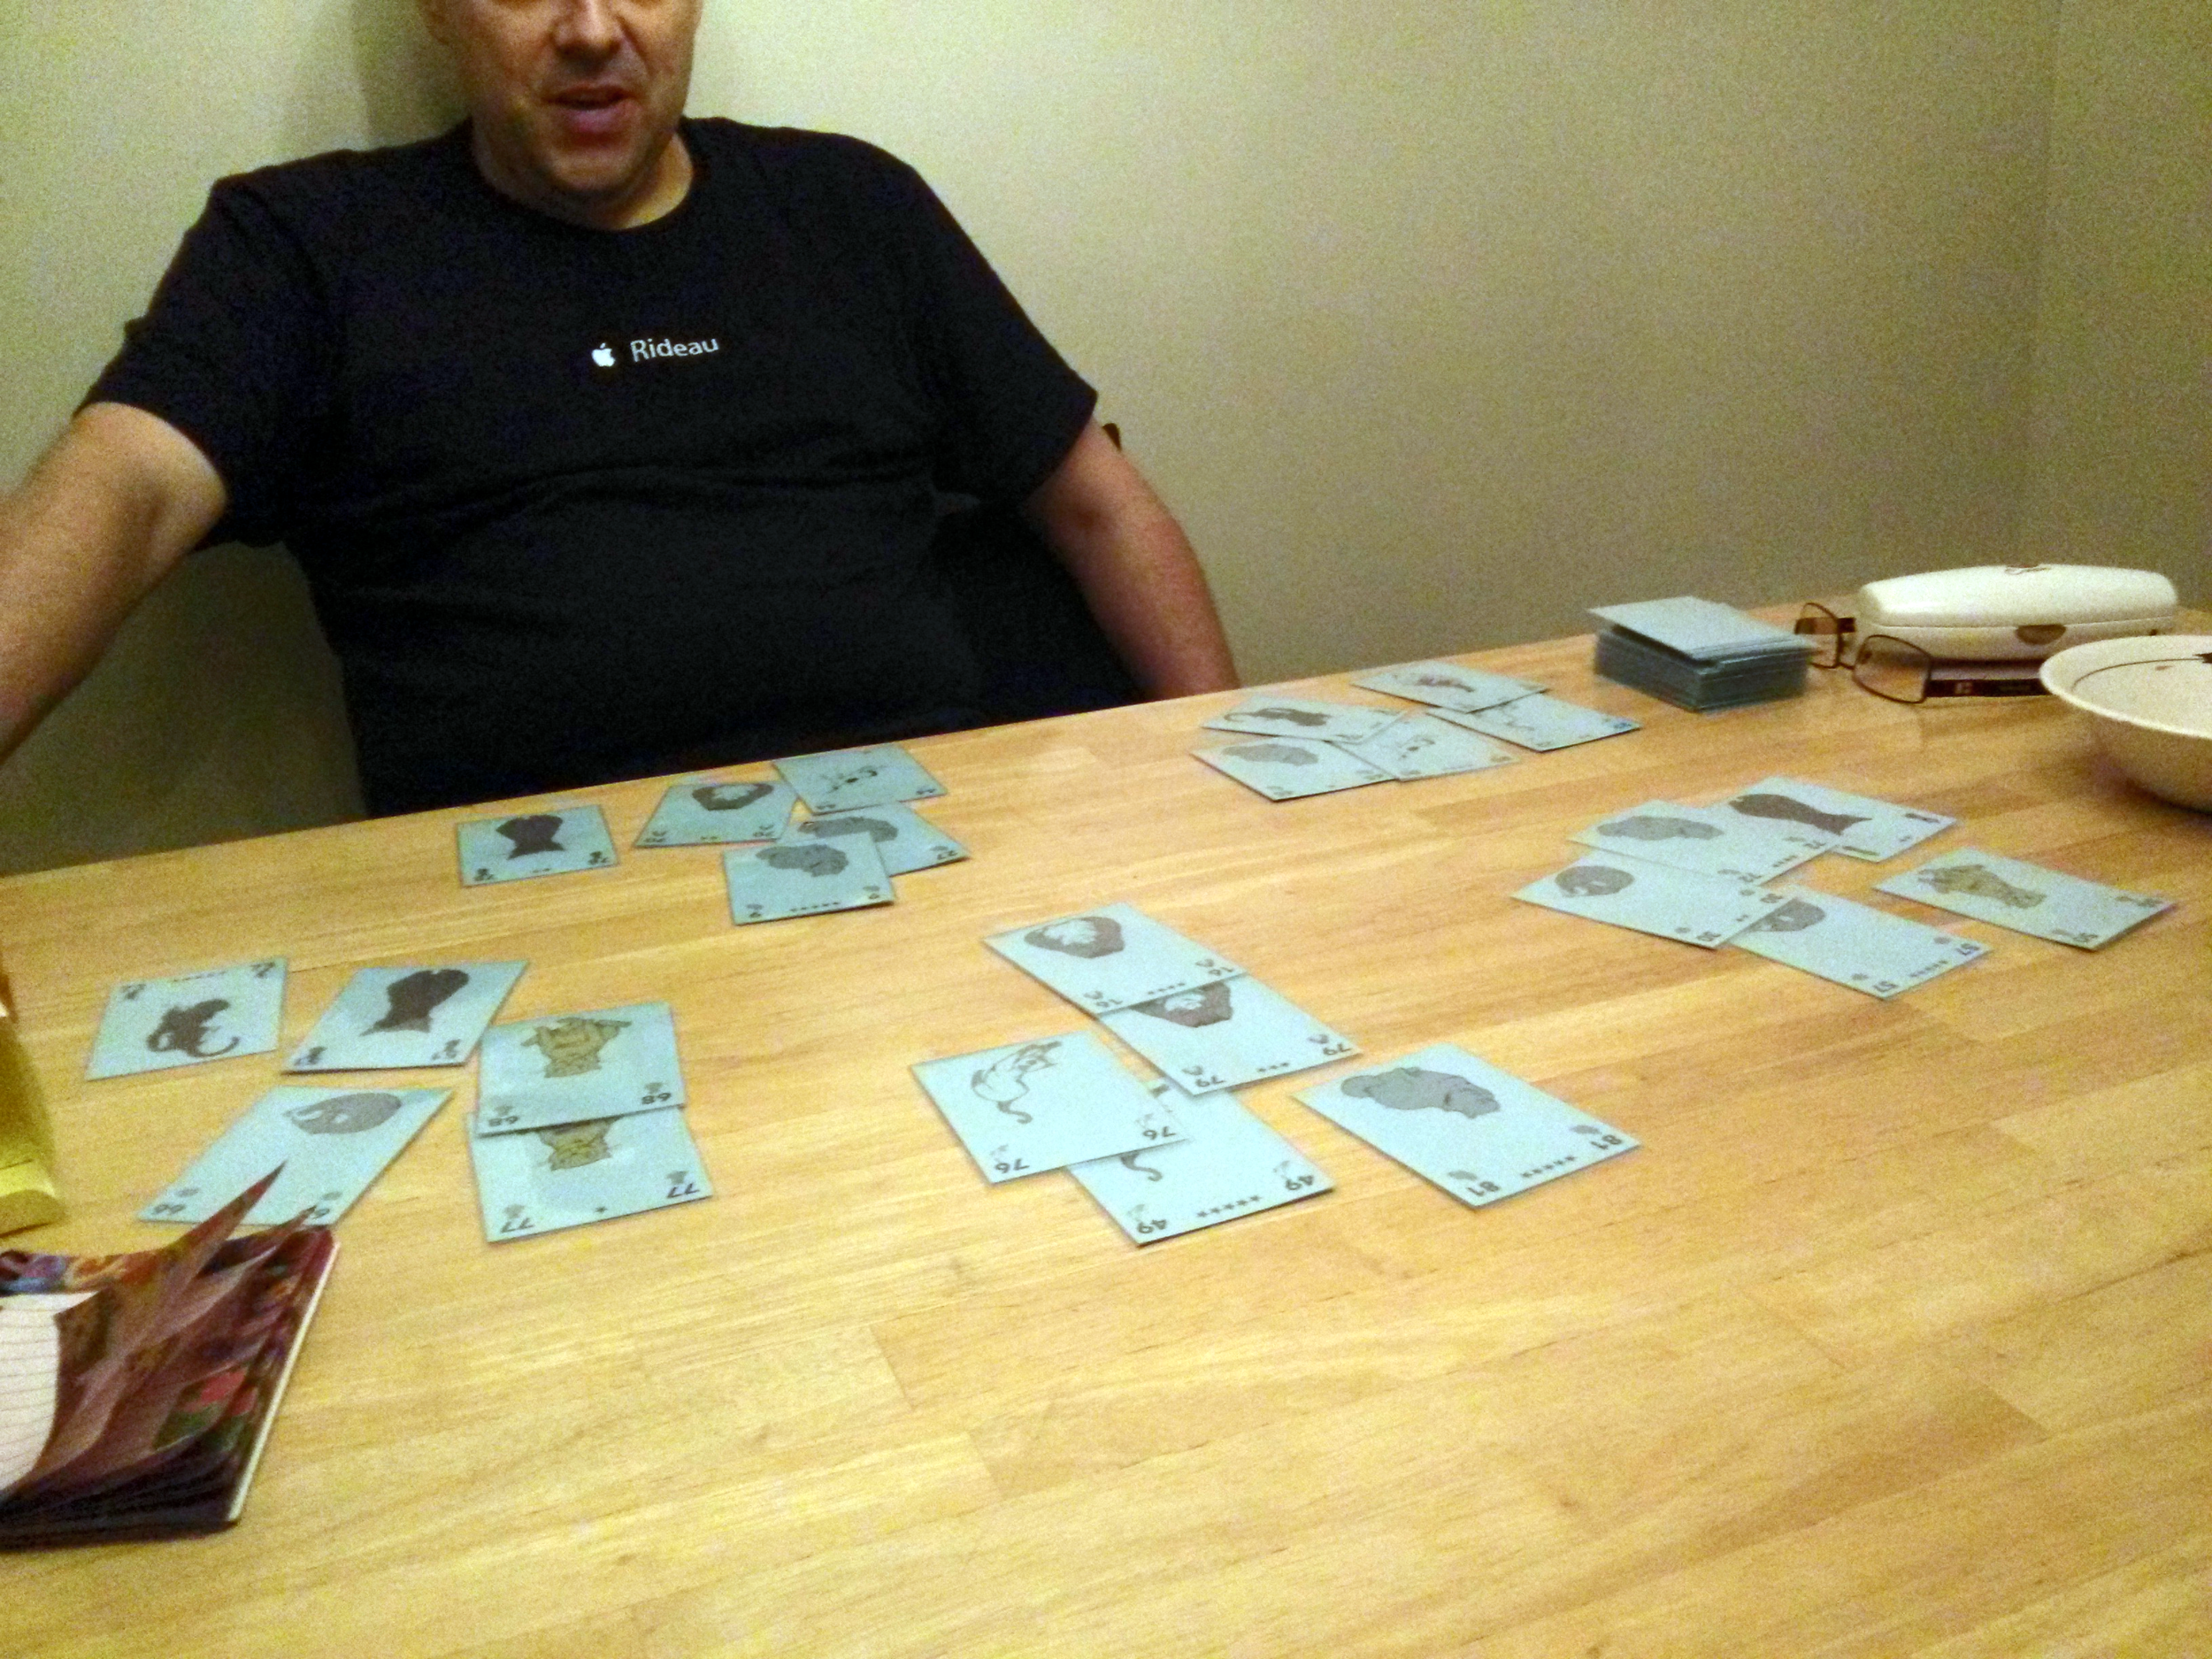 @revverm troubleshooting a five-player game of 9 Lives